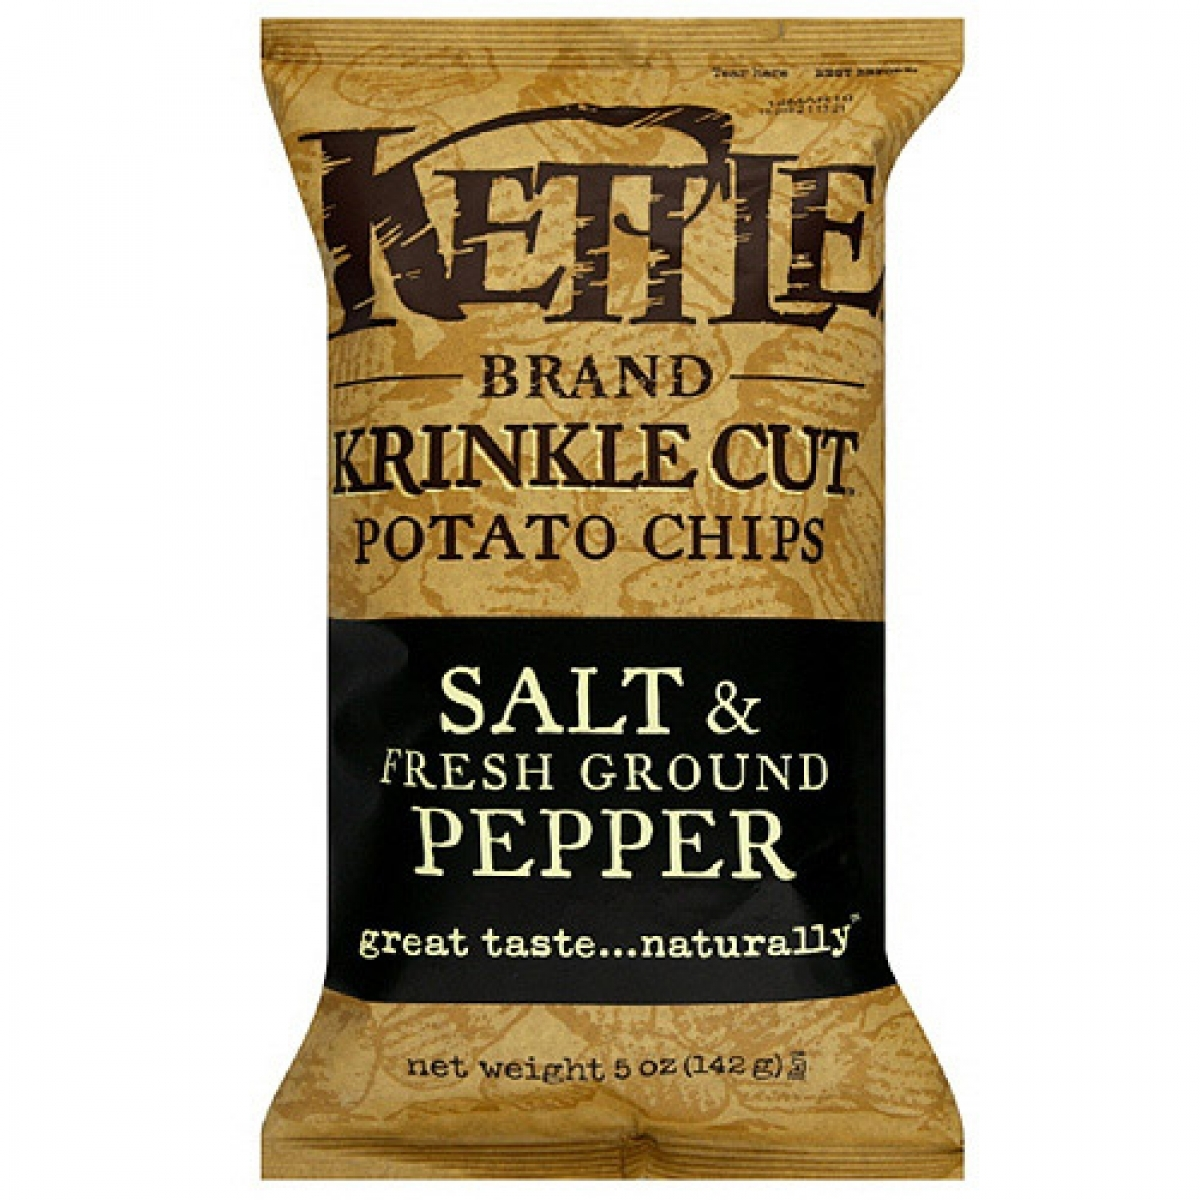 Kettle Brand Krinkle Cut Potato Chips – Salt & Fresh Ground Pepper (Regular 5oz)